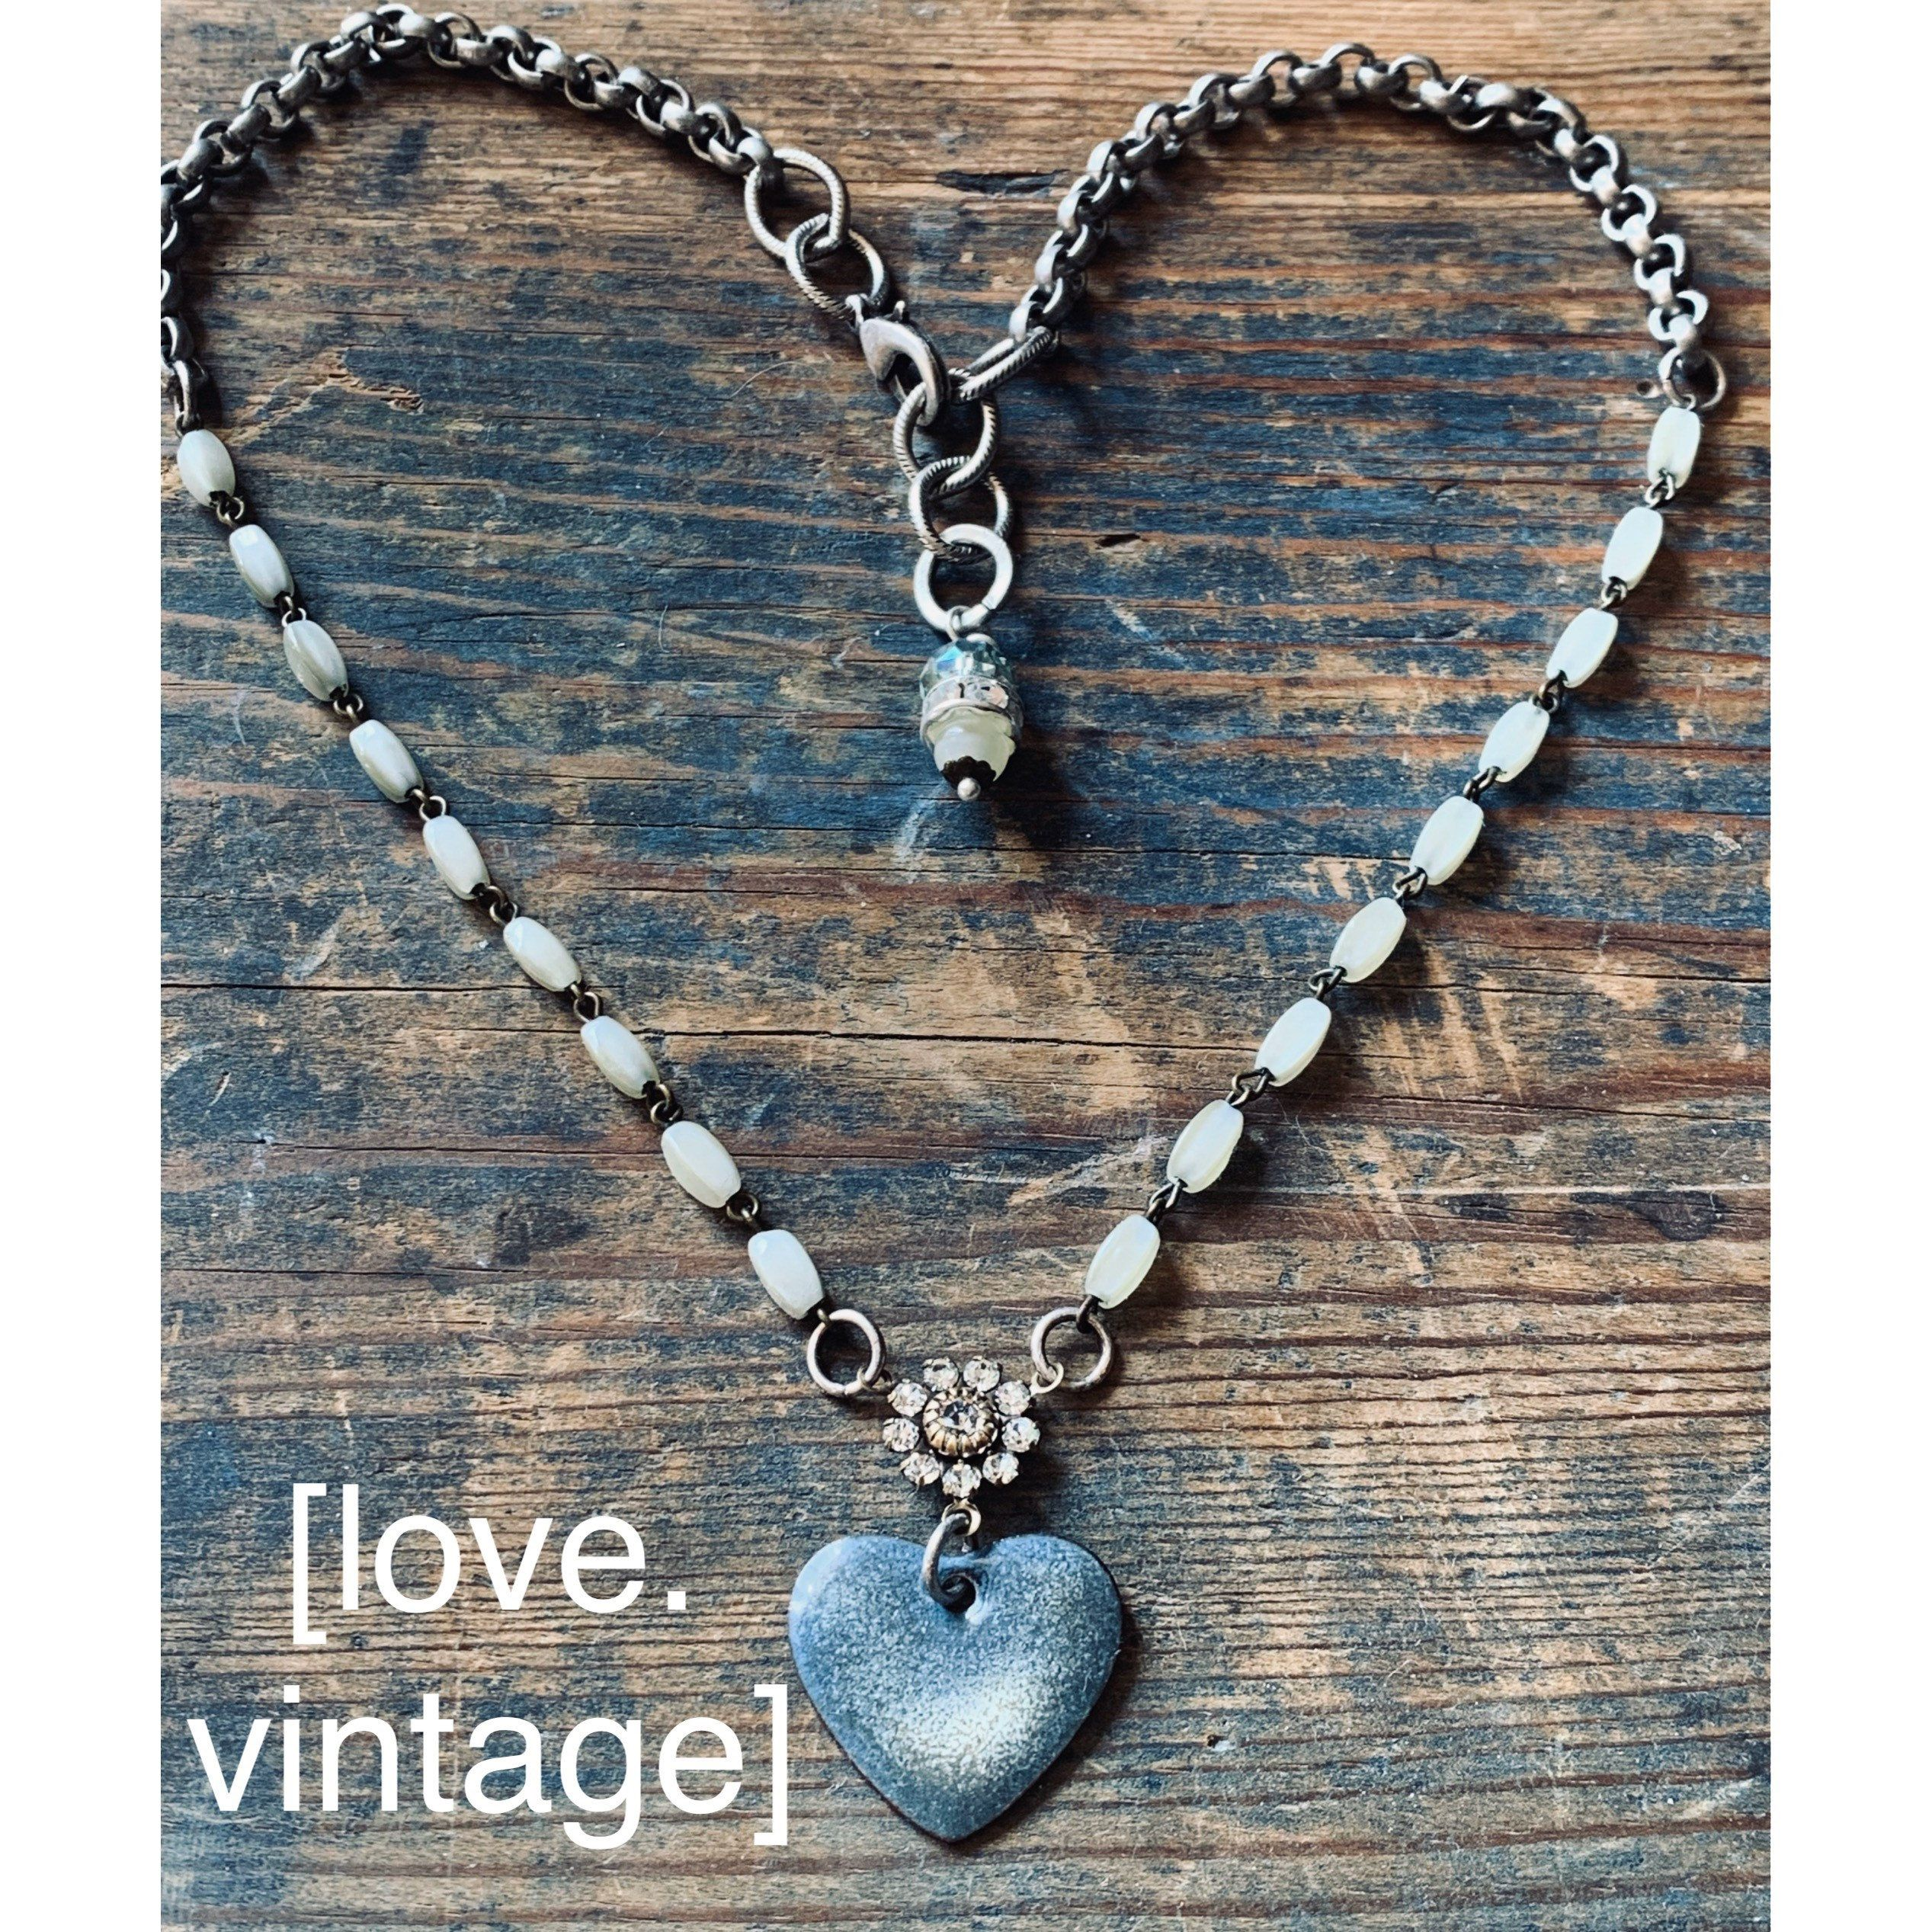 Excited to share this item from my #etsy shop: Torch Enameled Vintage Heart Necklace #heartnecklace #enameledheart #torchenamel #vintagebeads #heart #enameling #swarovskicrystal #repurposedvintage #handmadejewelry